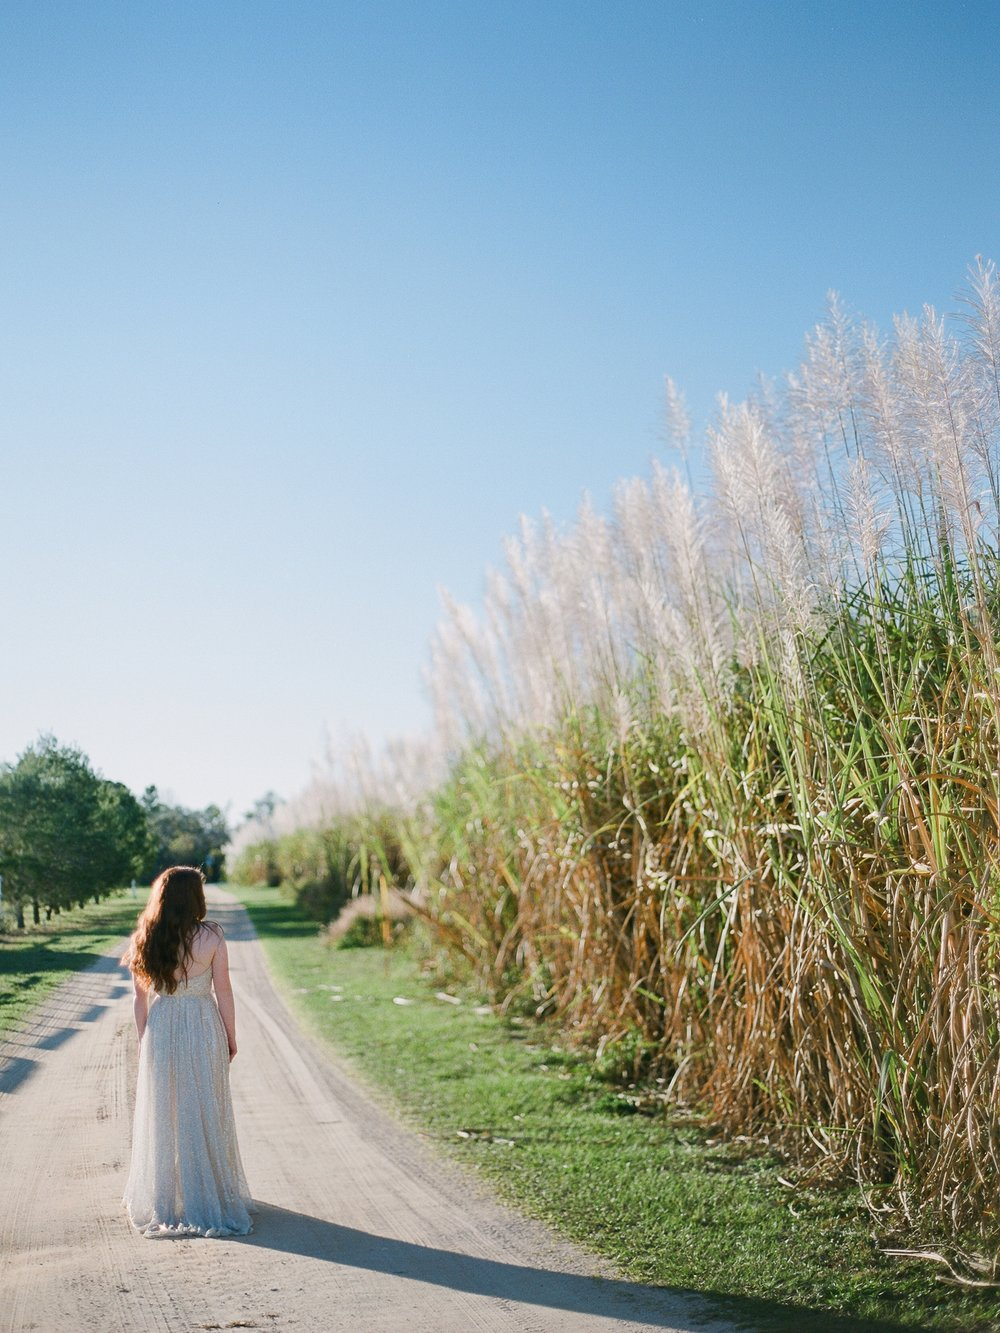 Sugarcane Inspired Shoot 2 27.jpg